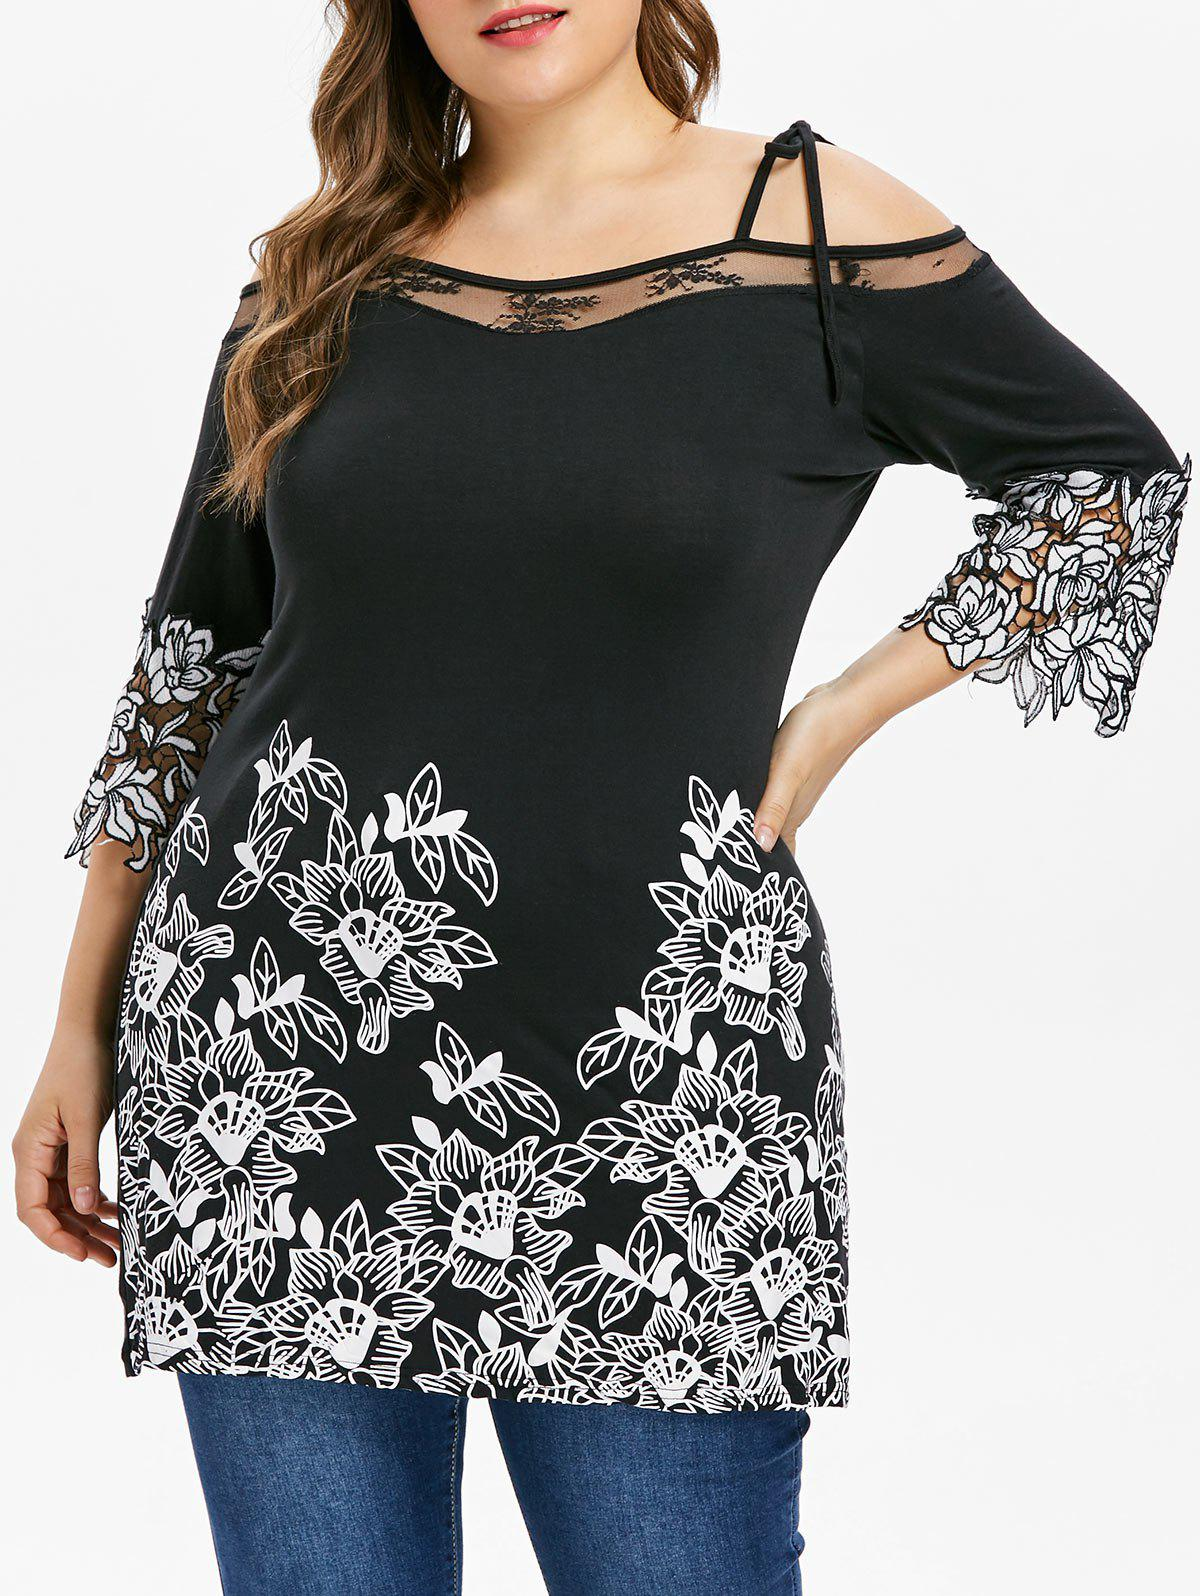 439a7bf28208f 52% OFF   2018 Plus Size Lace Applique Cold Shoulder T-shirt In ...